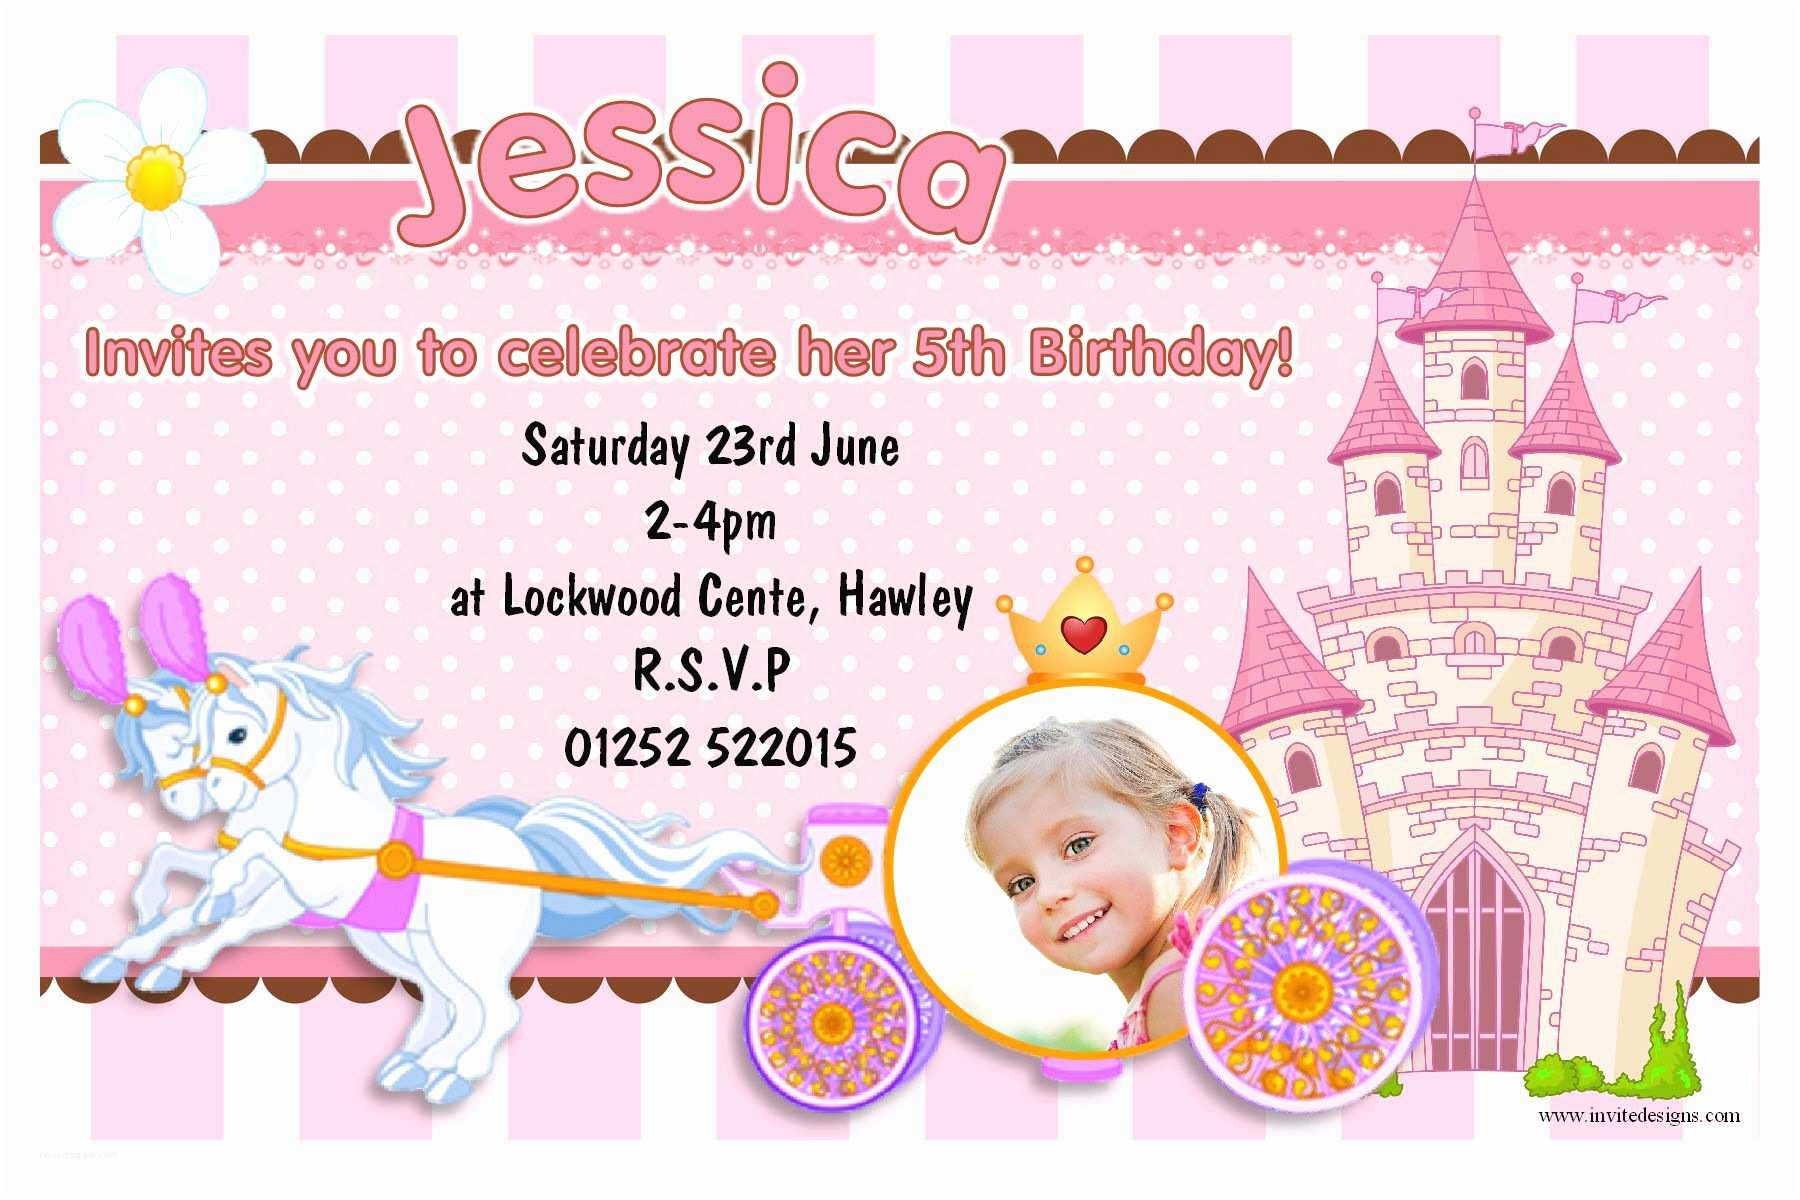 Birthday Invitation Cards Birthday Cards Invitation Birthday Cards Invitation for